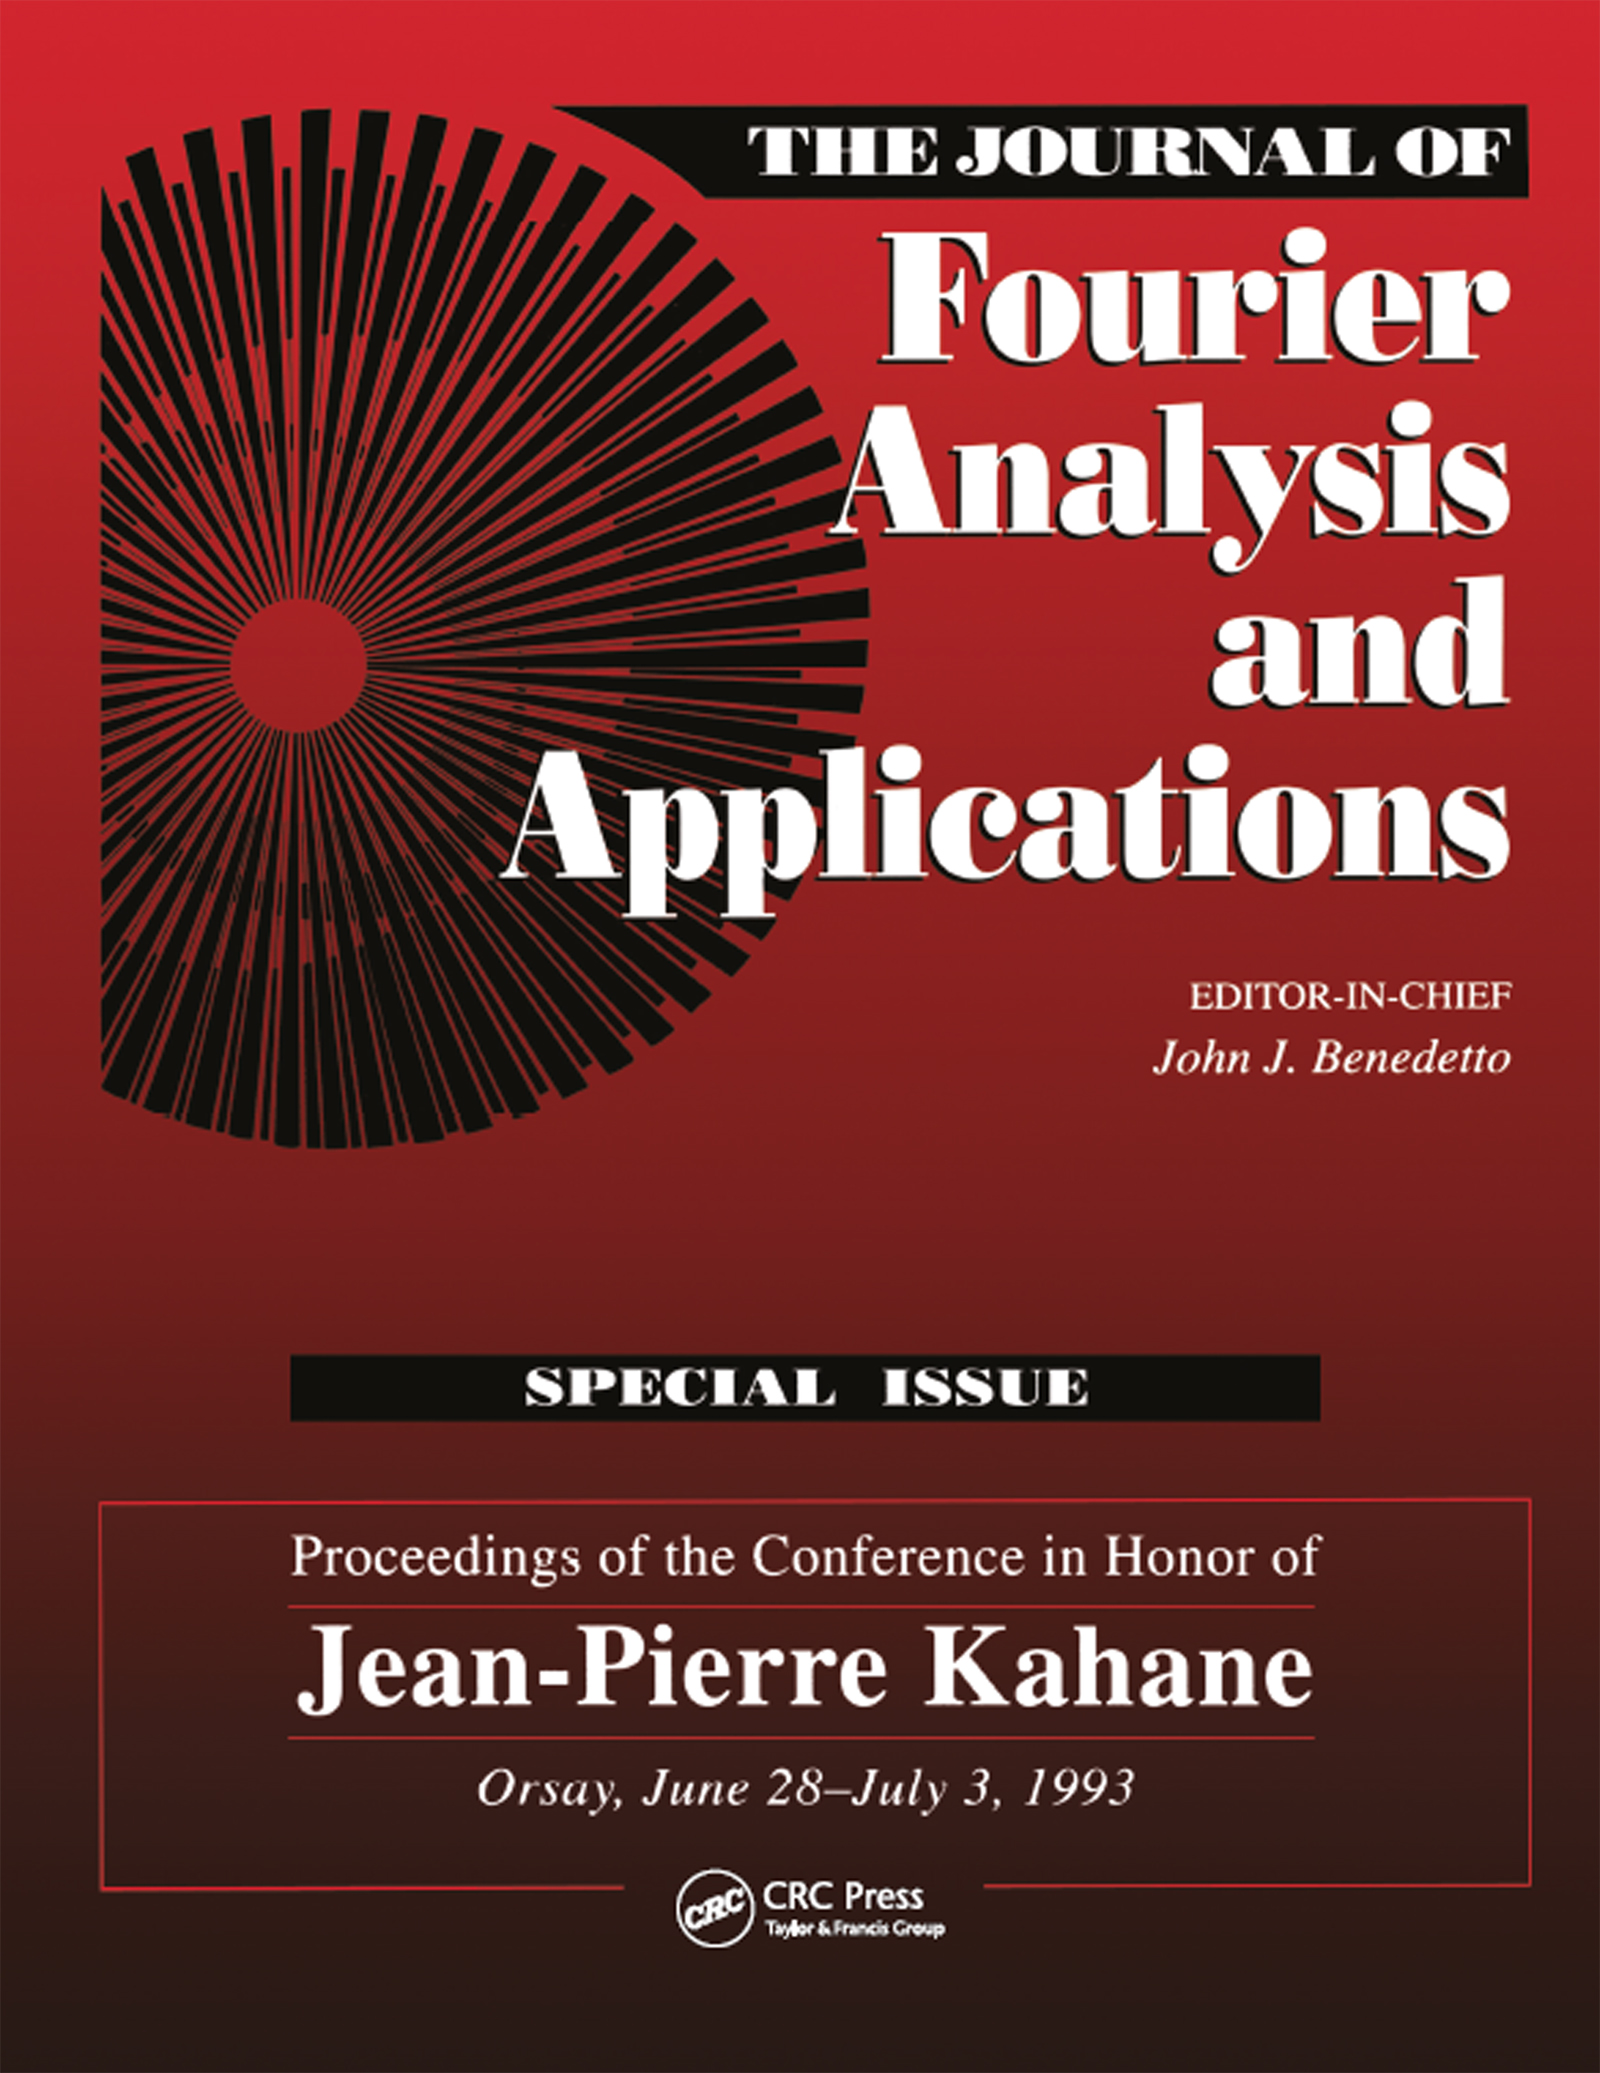 The Journal of Fourier Analysis and Applications